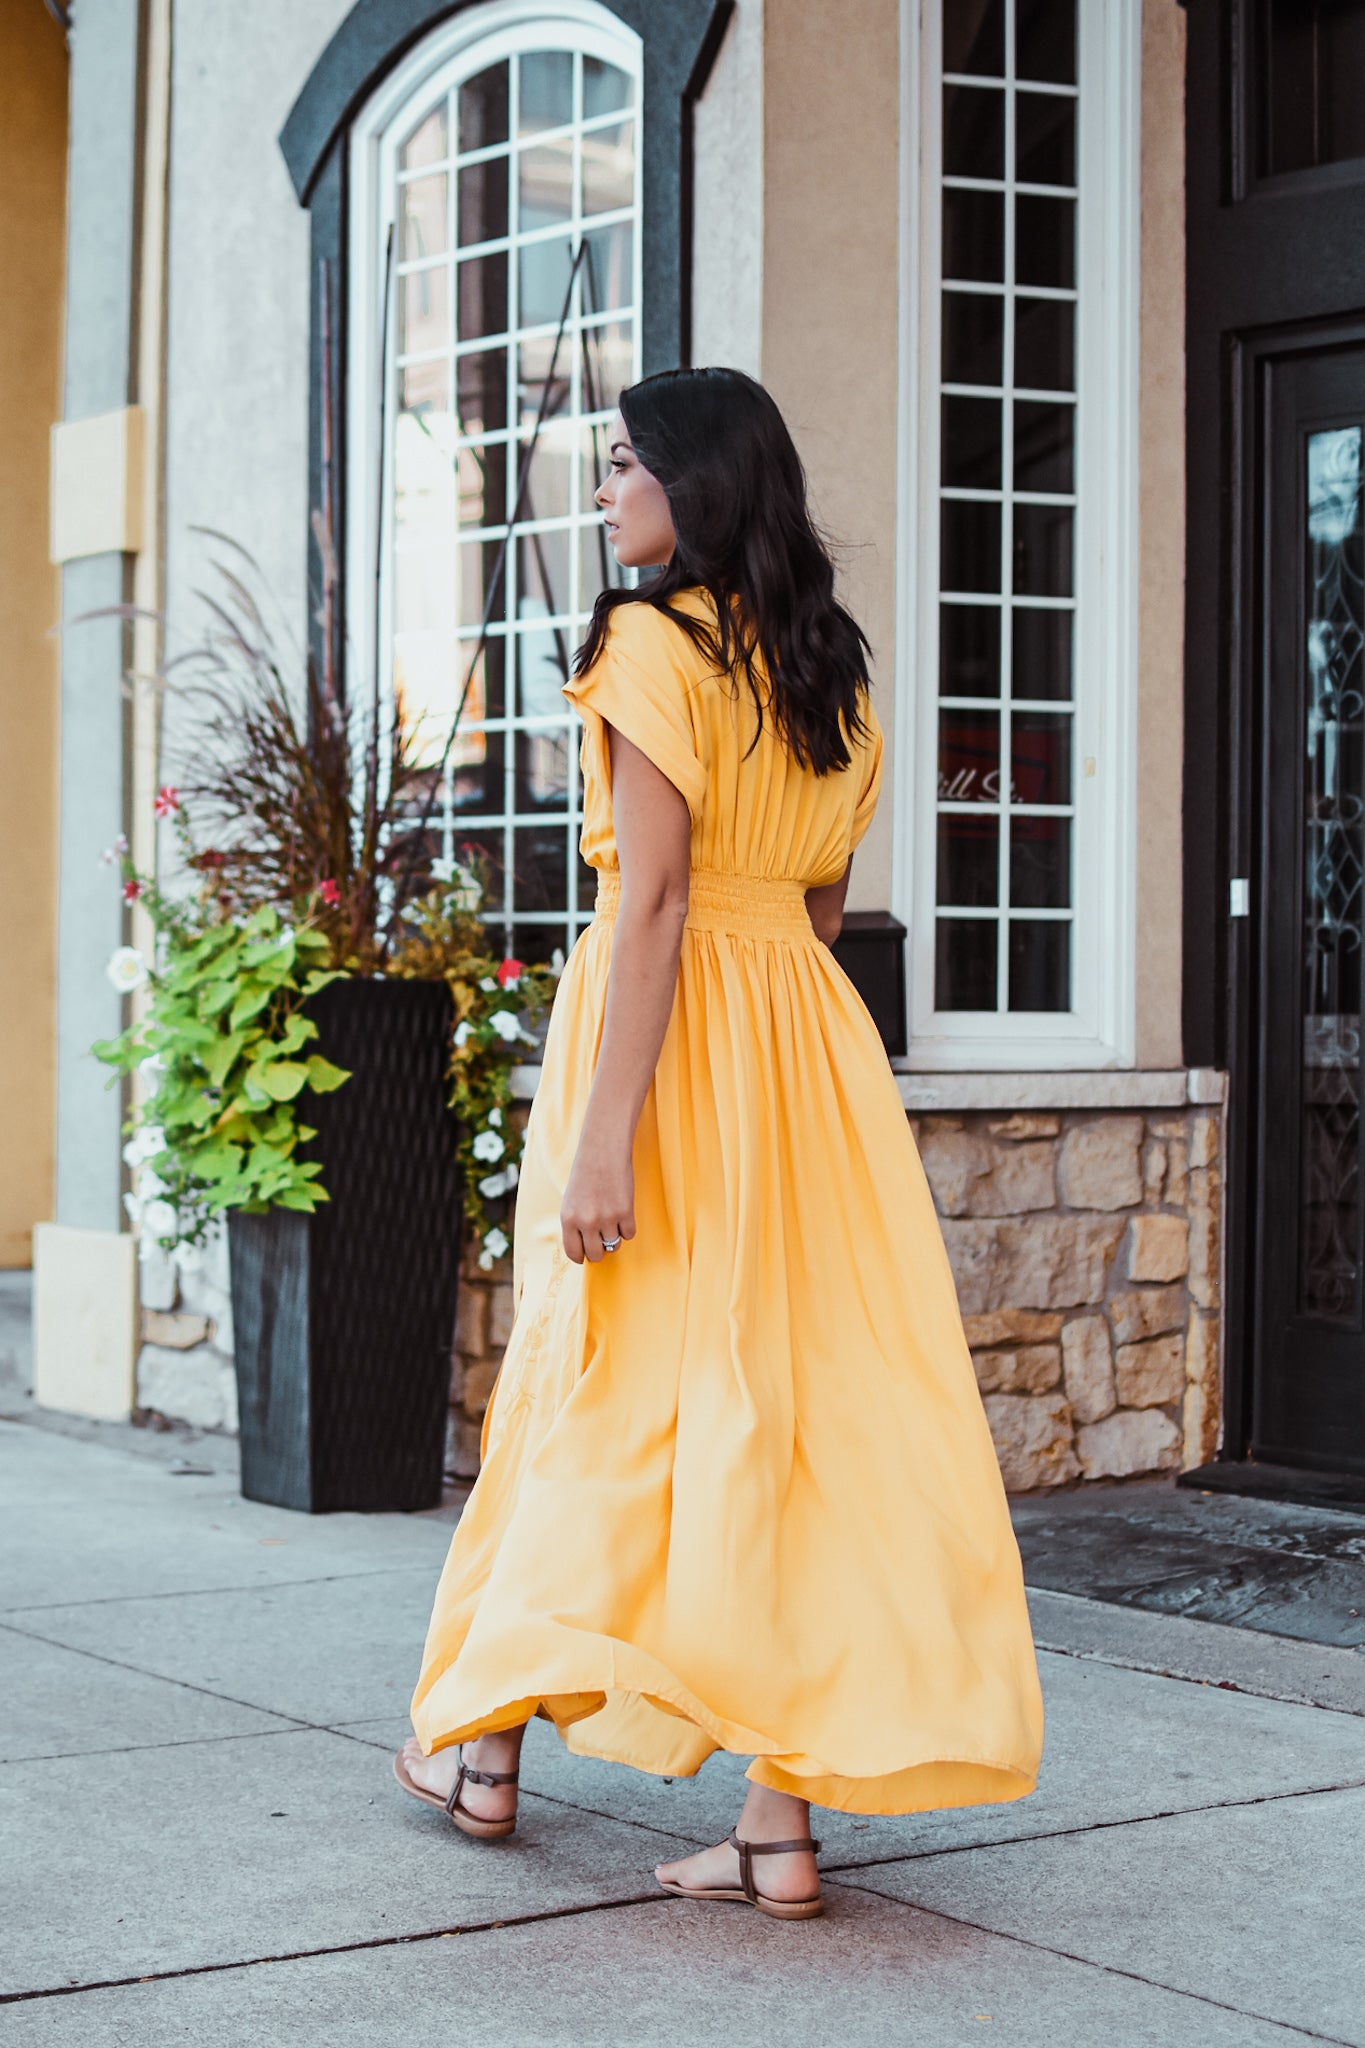 xSOLD OUTx Hot September Embroidered Maxi Dress in Mustard Yellow